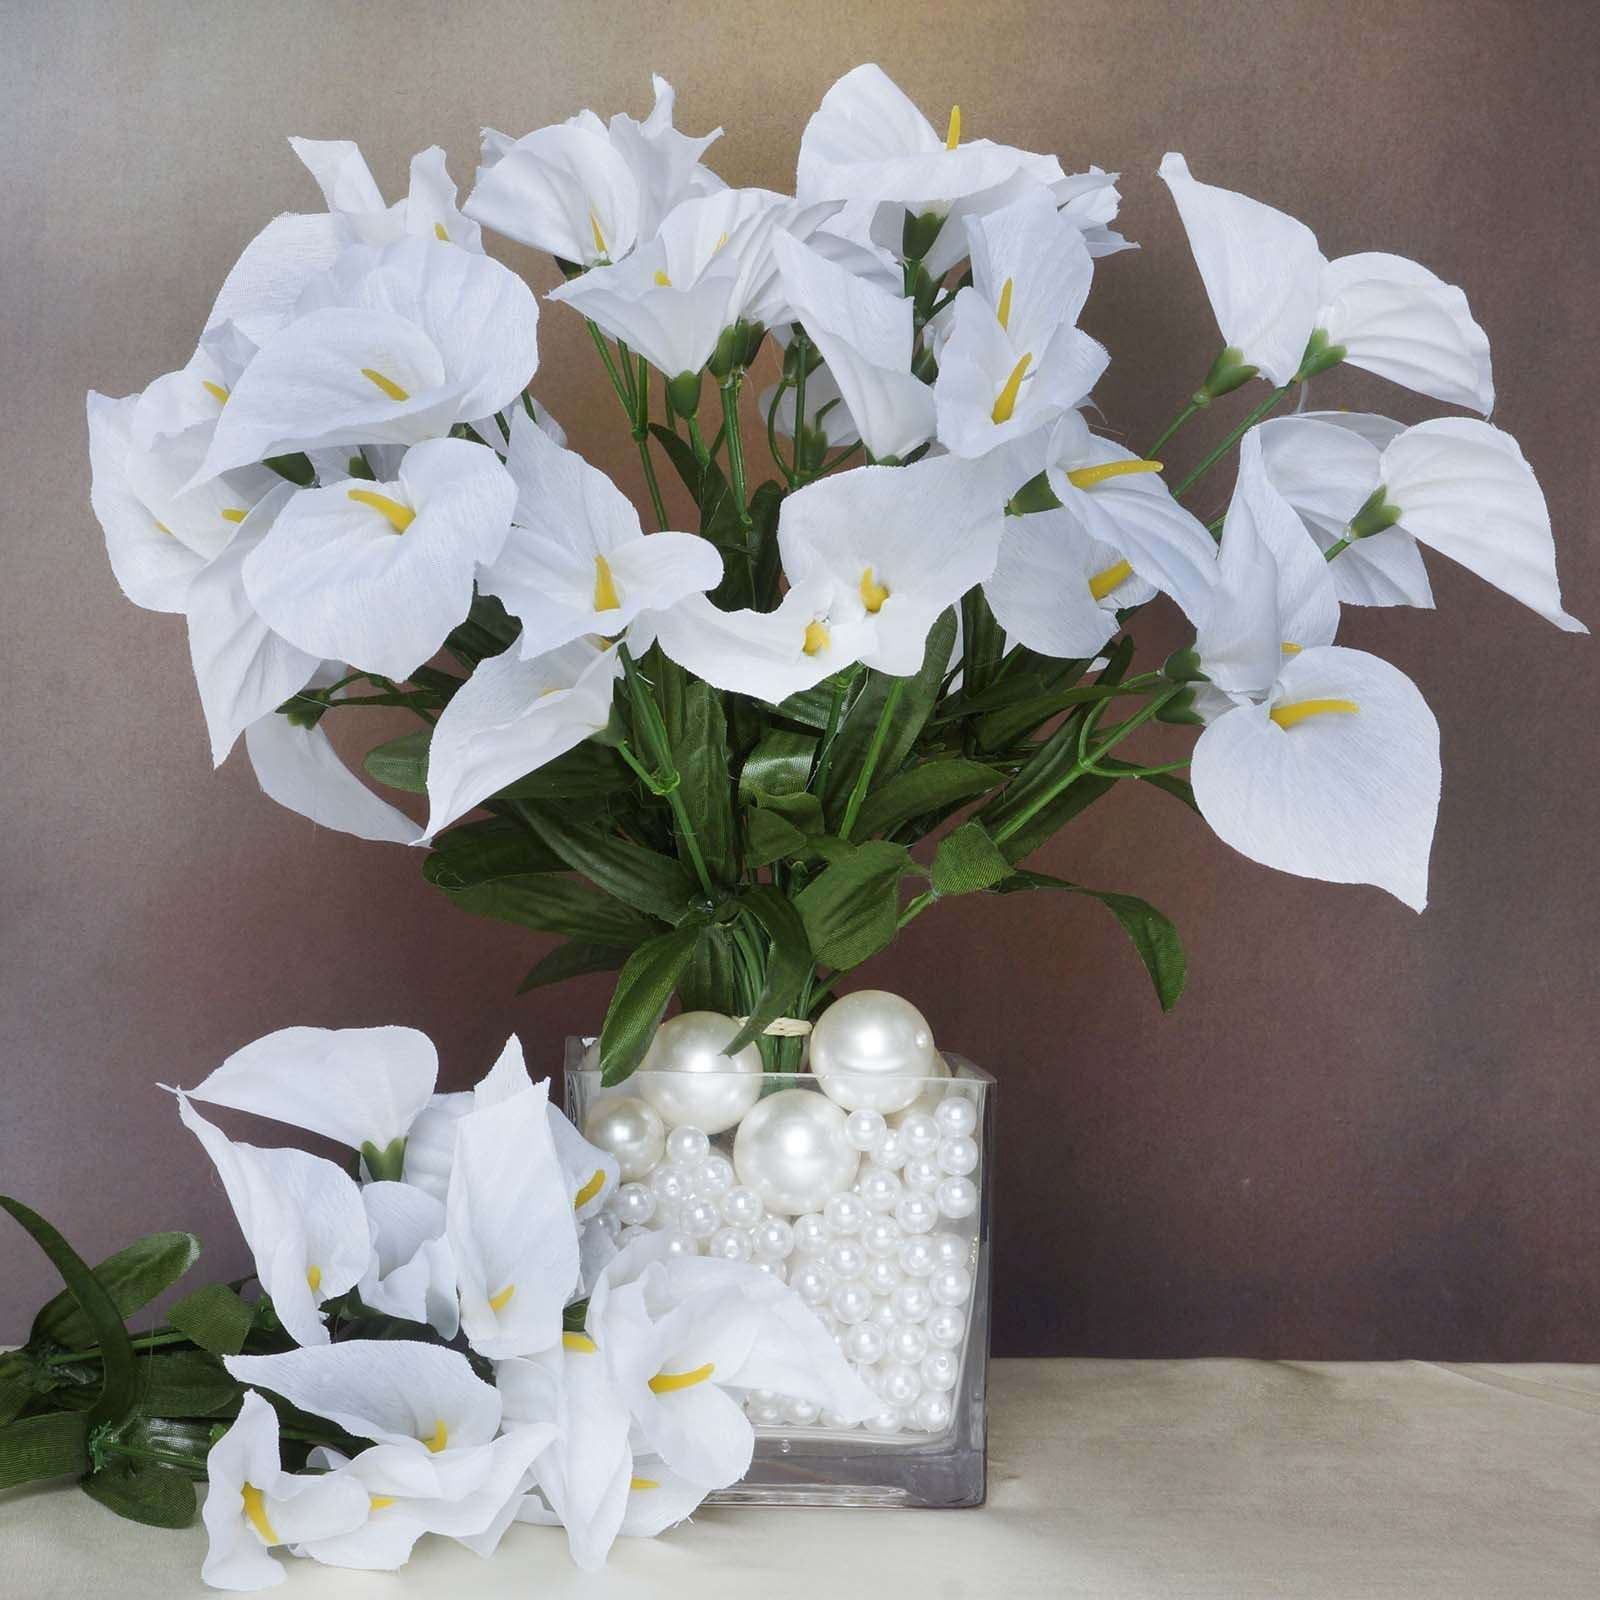 12 bush 252 pcs white artificial mini calla lilies flower wedding 252 wholesale artificial mini calla lilies wedding flower vase centerpiece decor white izmirmasajfo